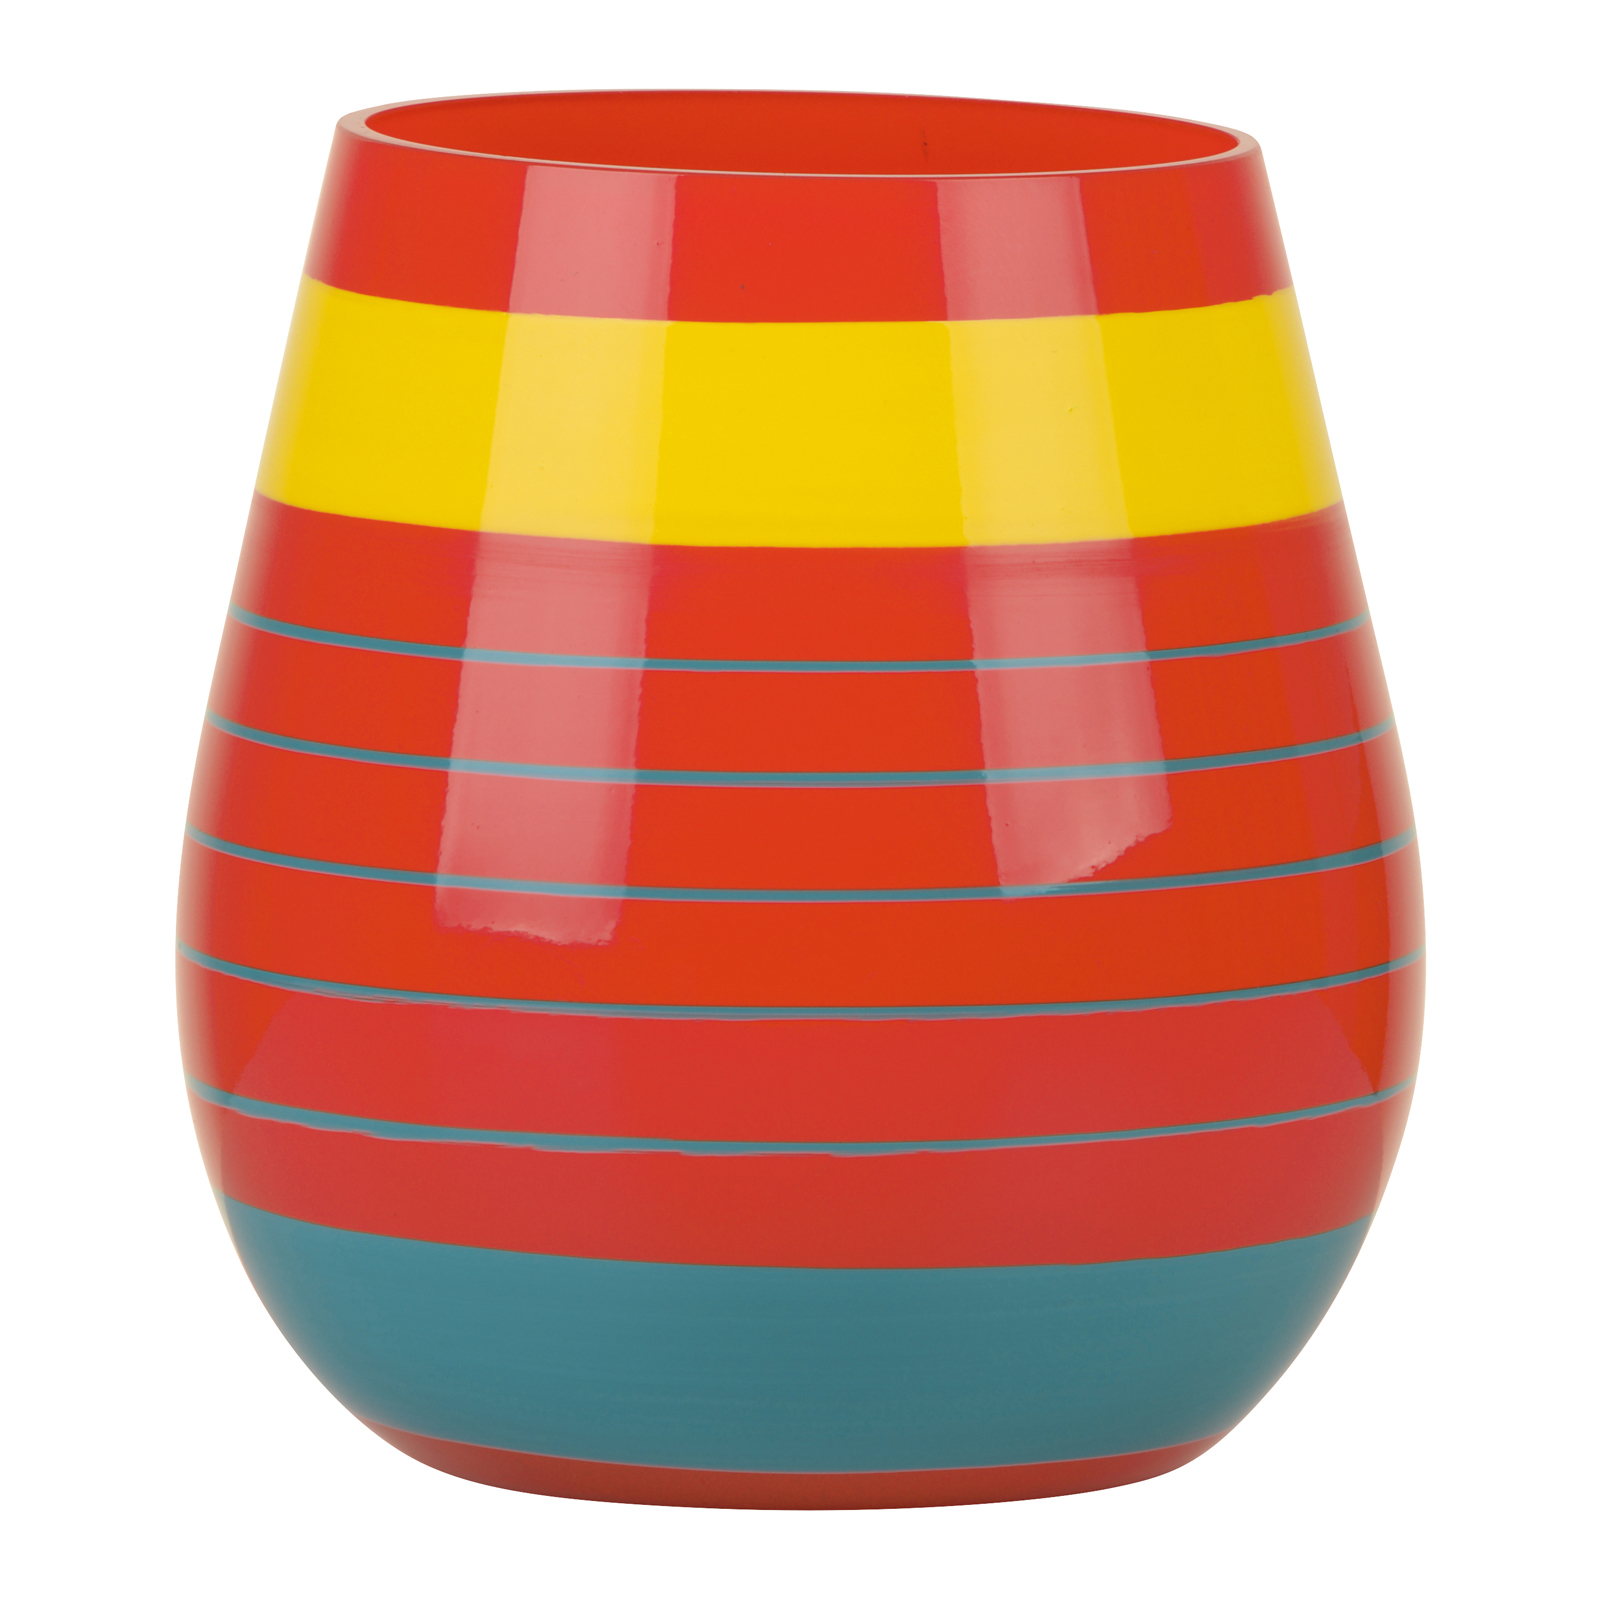 Halo Orange Vase Small